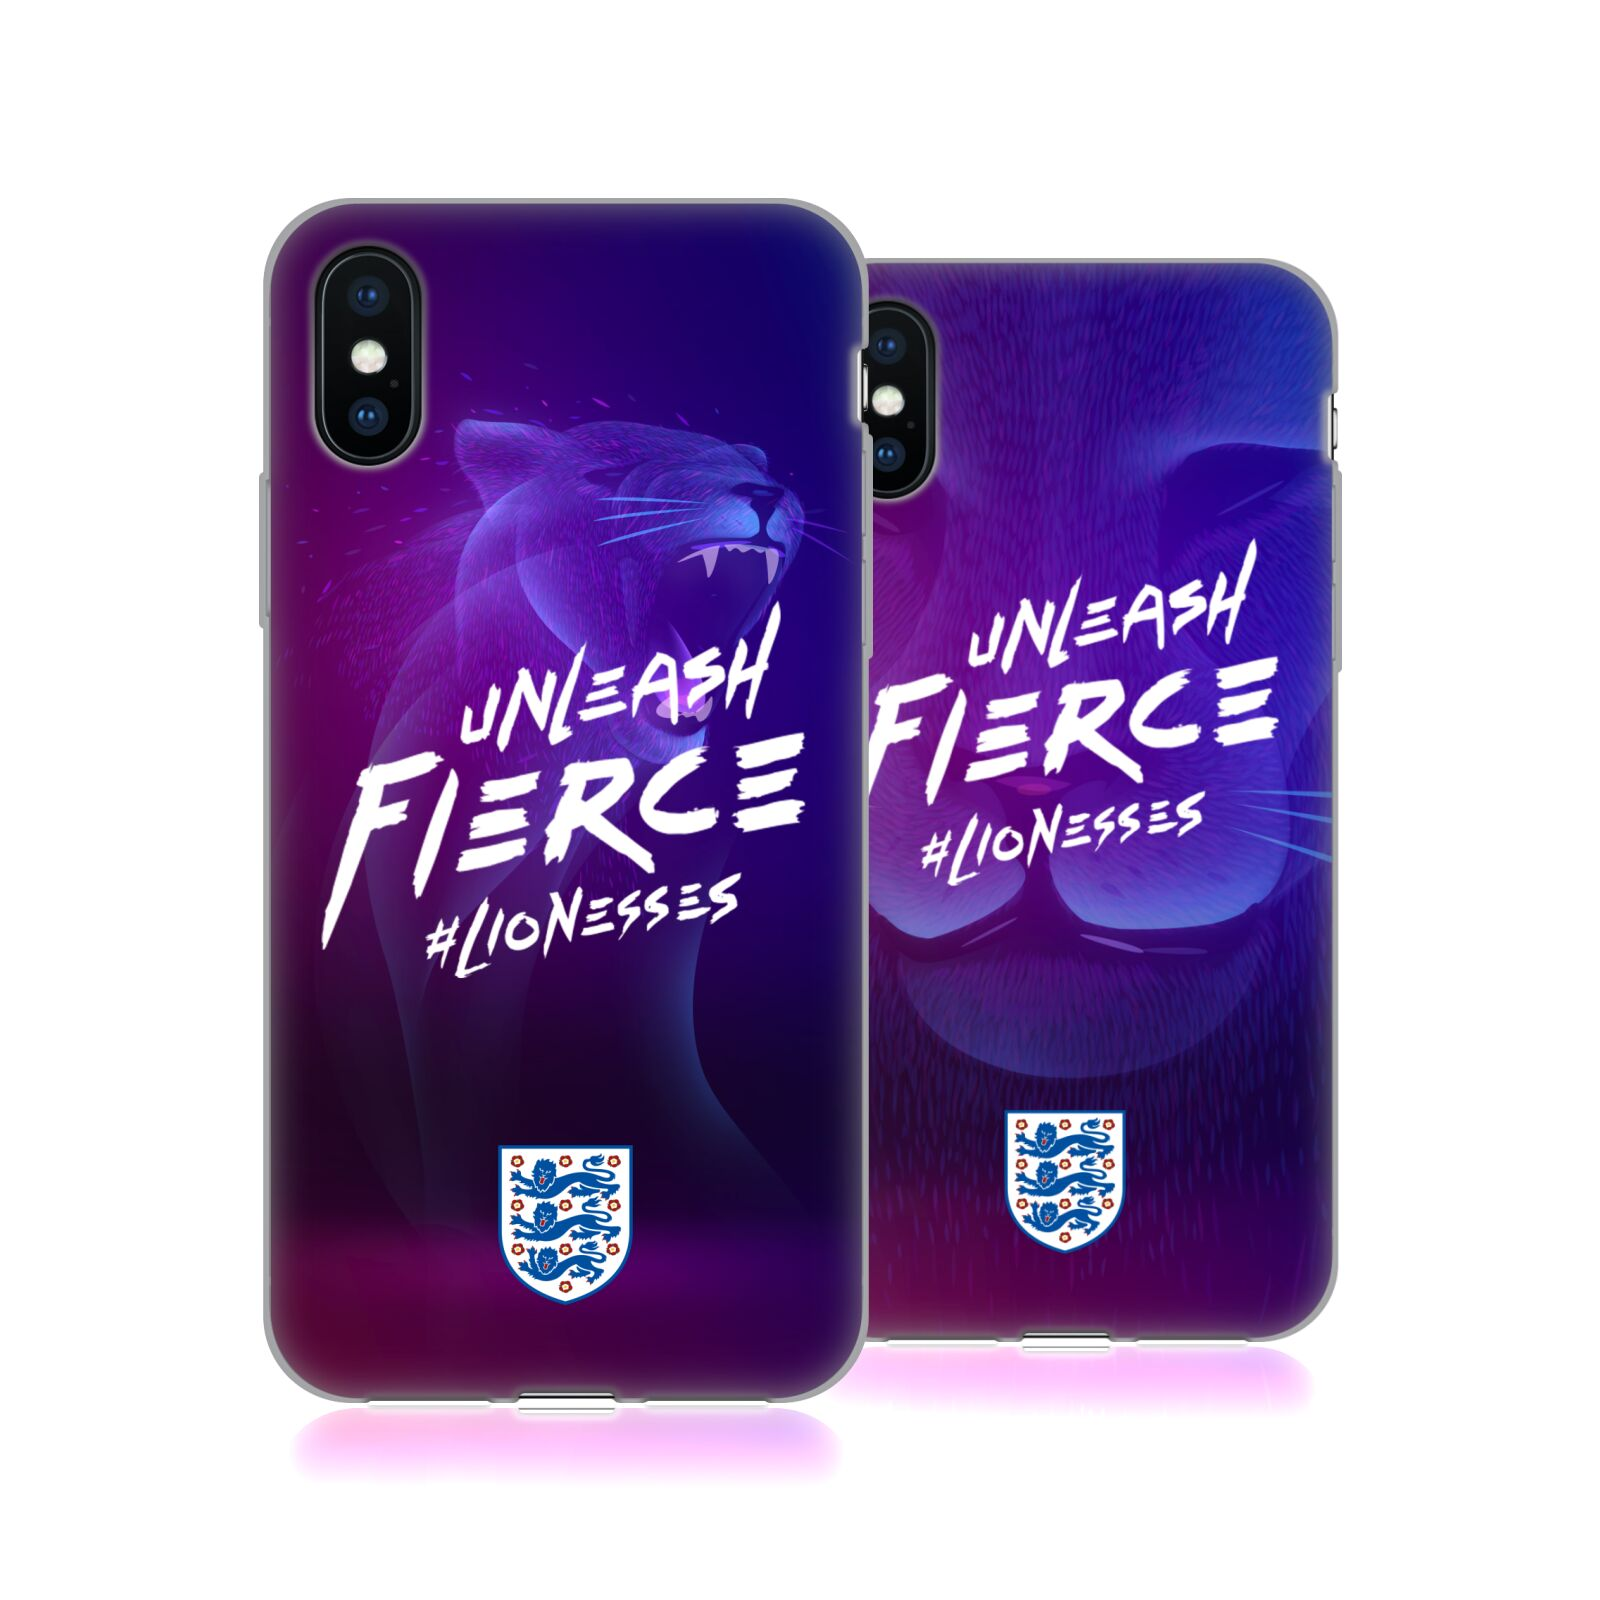 England National Football Team <!--translate-lineup-->2018 Unleash Fierce<!--translate-lineup-->